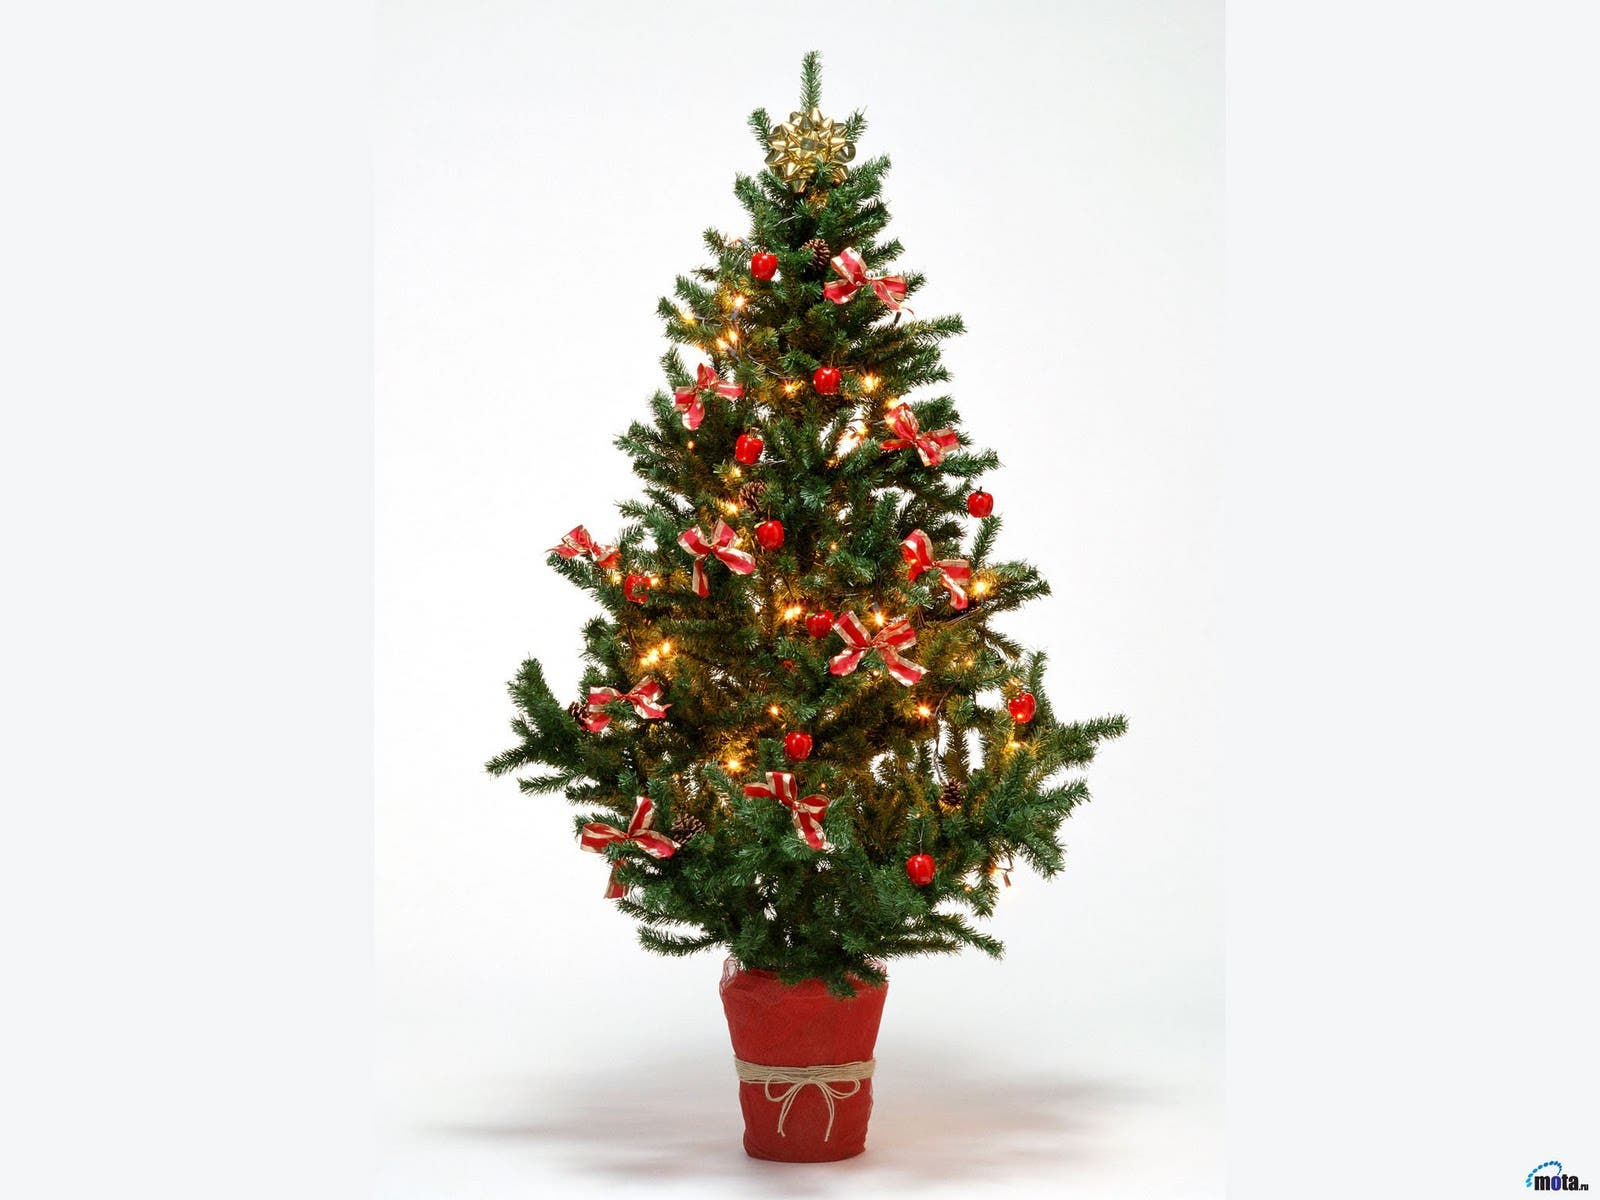 Village Christmas Tree Pickup And Holiday Light Recycling